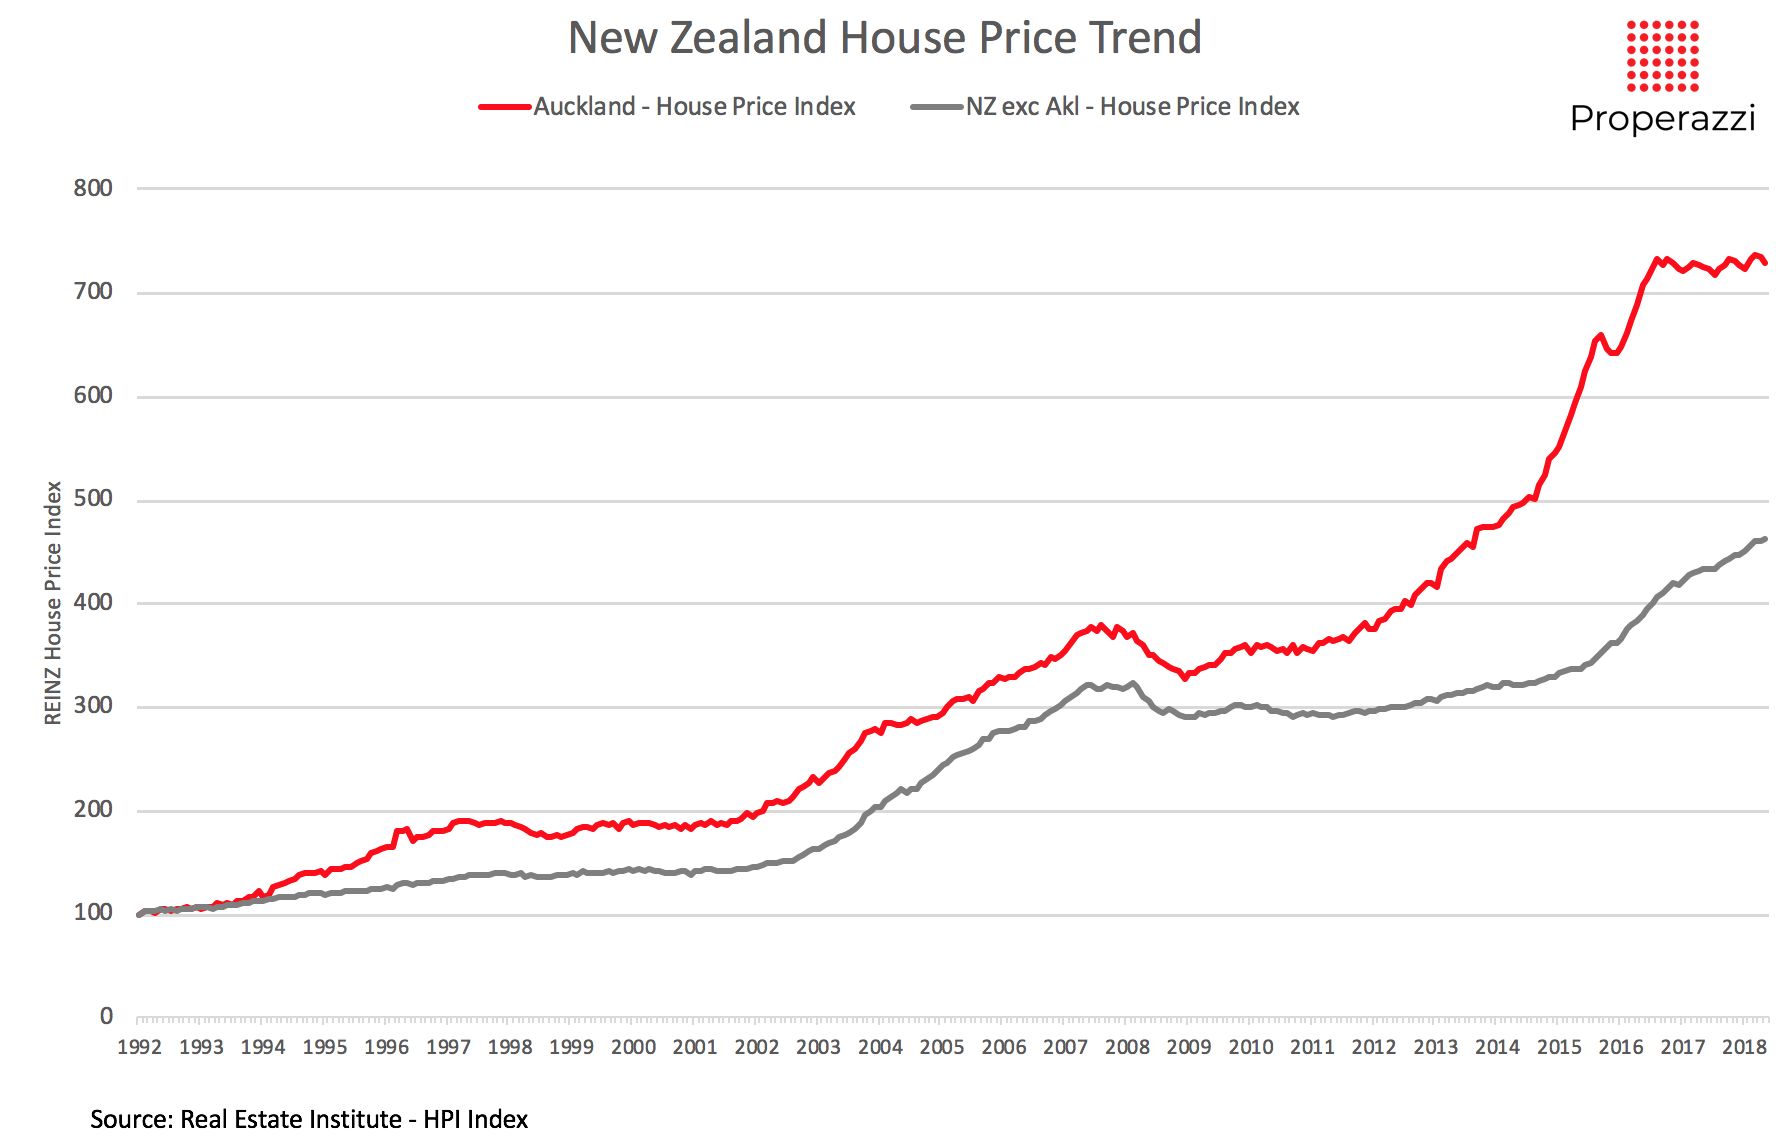 The Property Market Cycles Of The Past 25 Years Properazzi